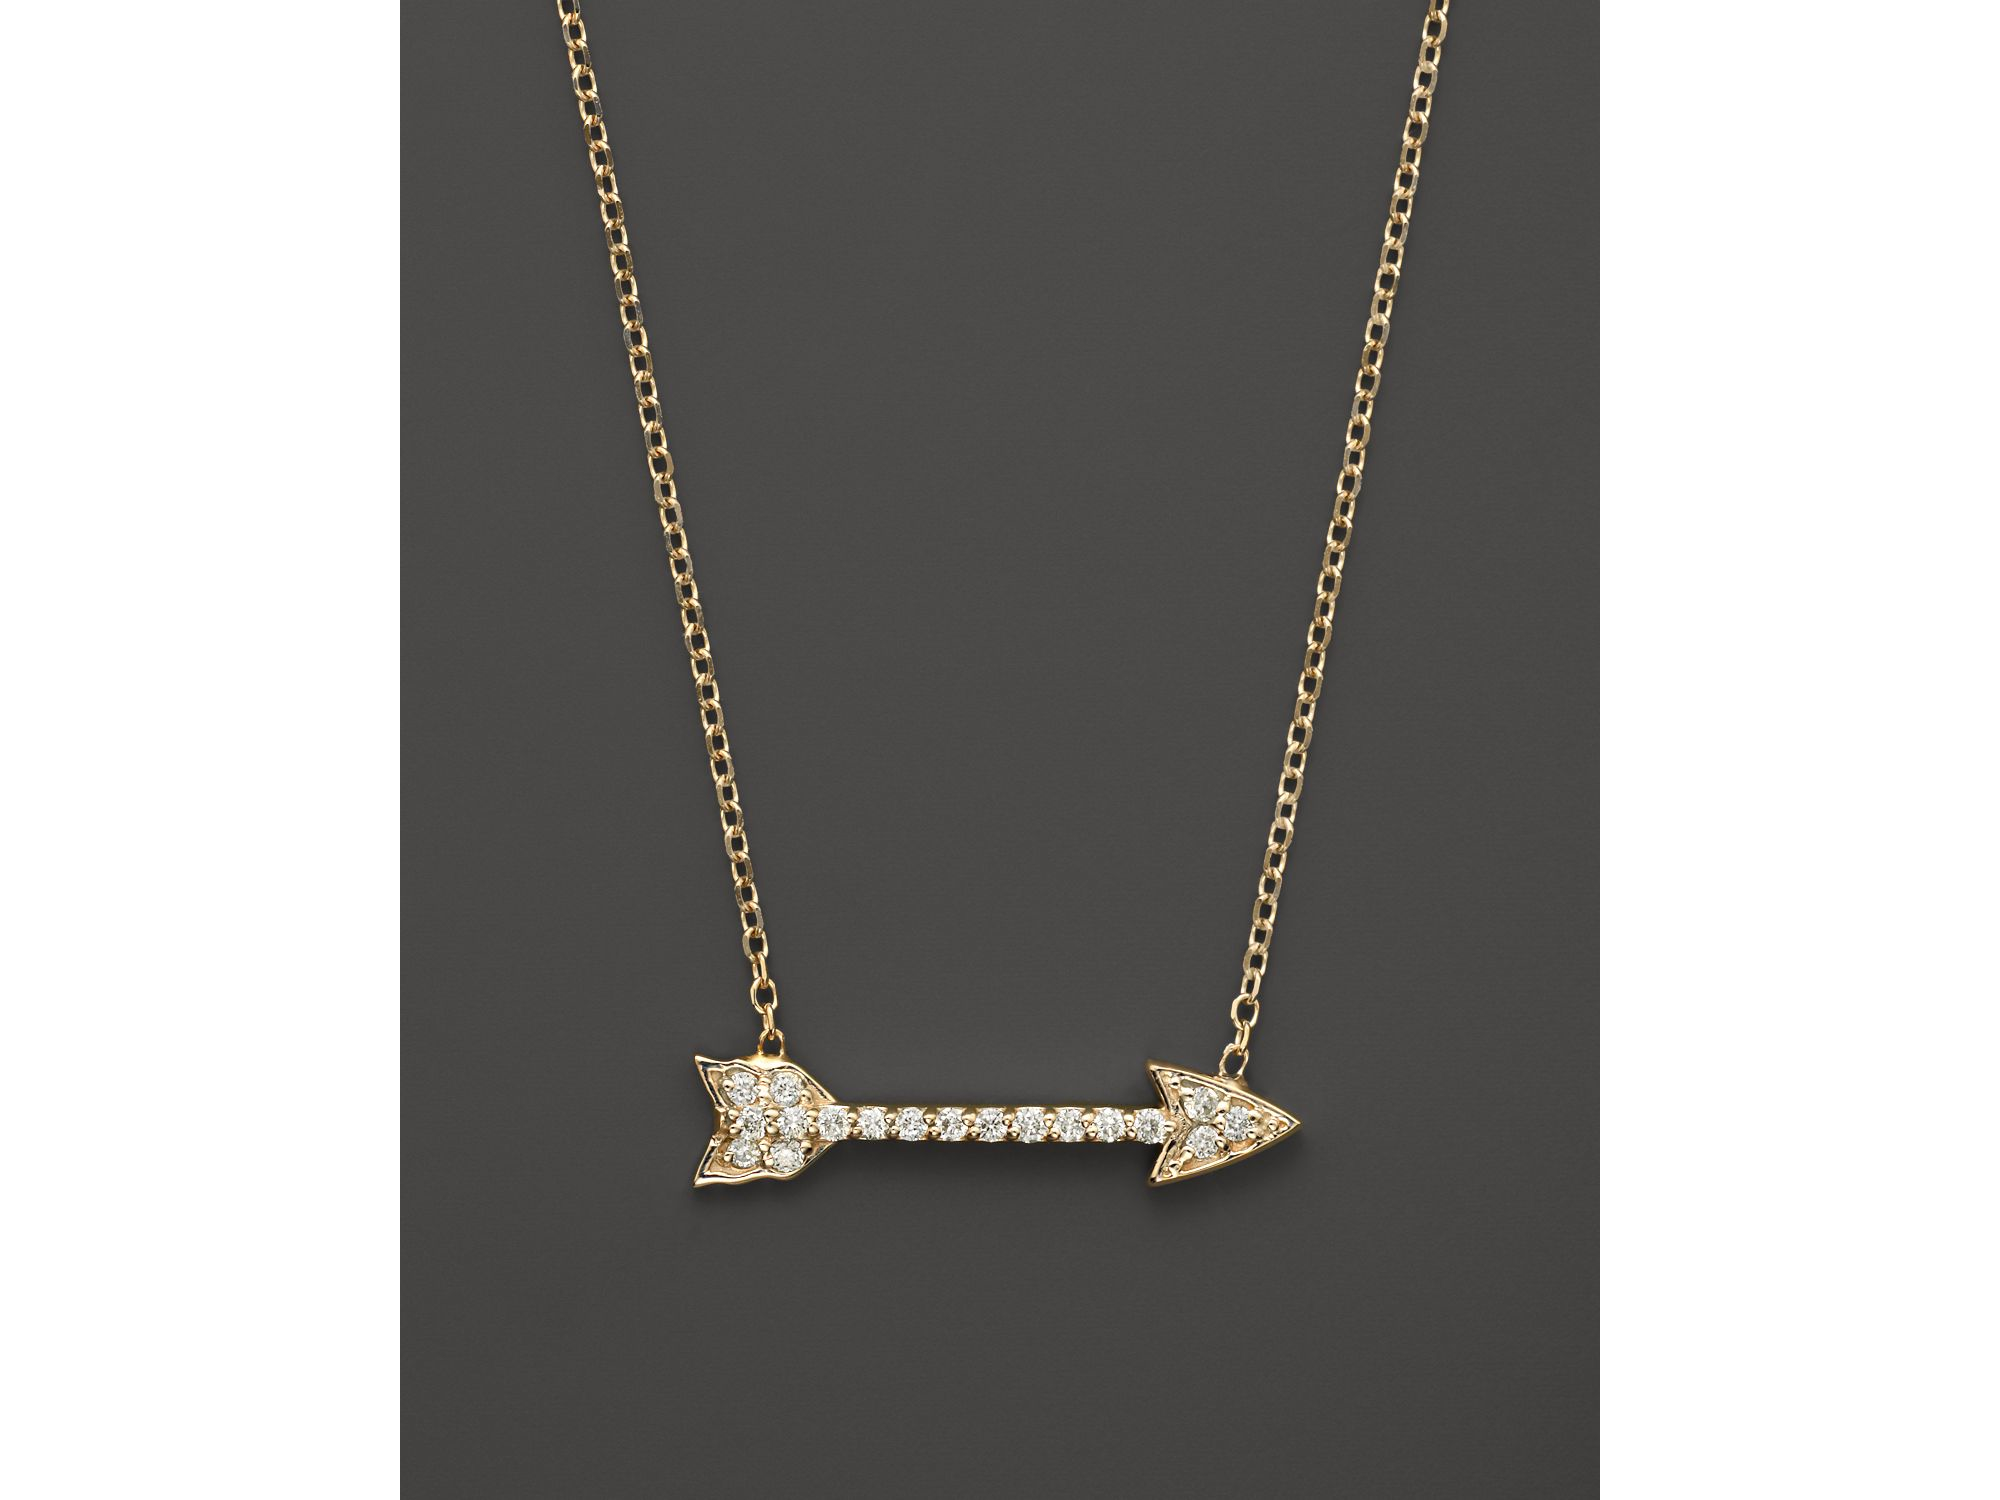 Lyst kc designs small diamond arrow pendant necklace in 14k yellow gallery aloadofball Image collections